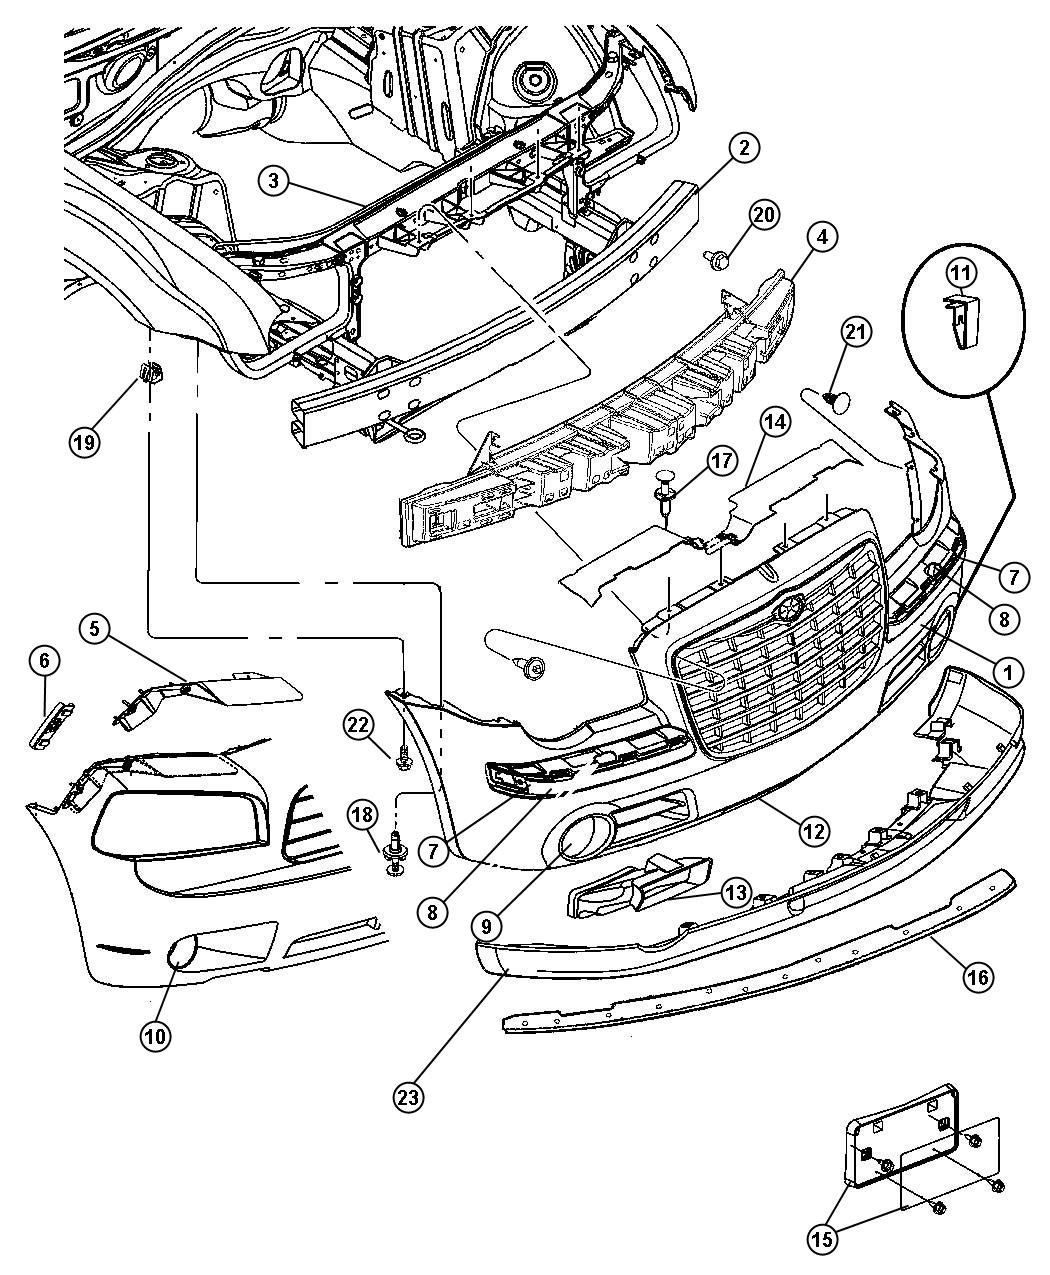 2006 Chrysler 300 Engine Diagram: 2006 Chrysler 300 Panel. Left. Closeout. Grille, Headlamp